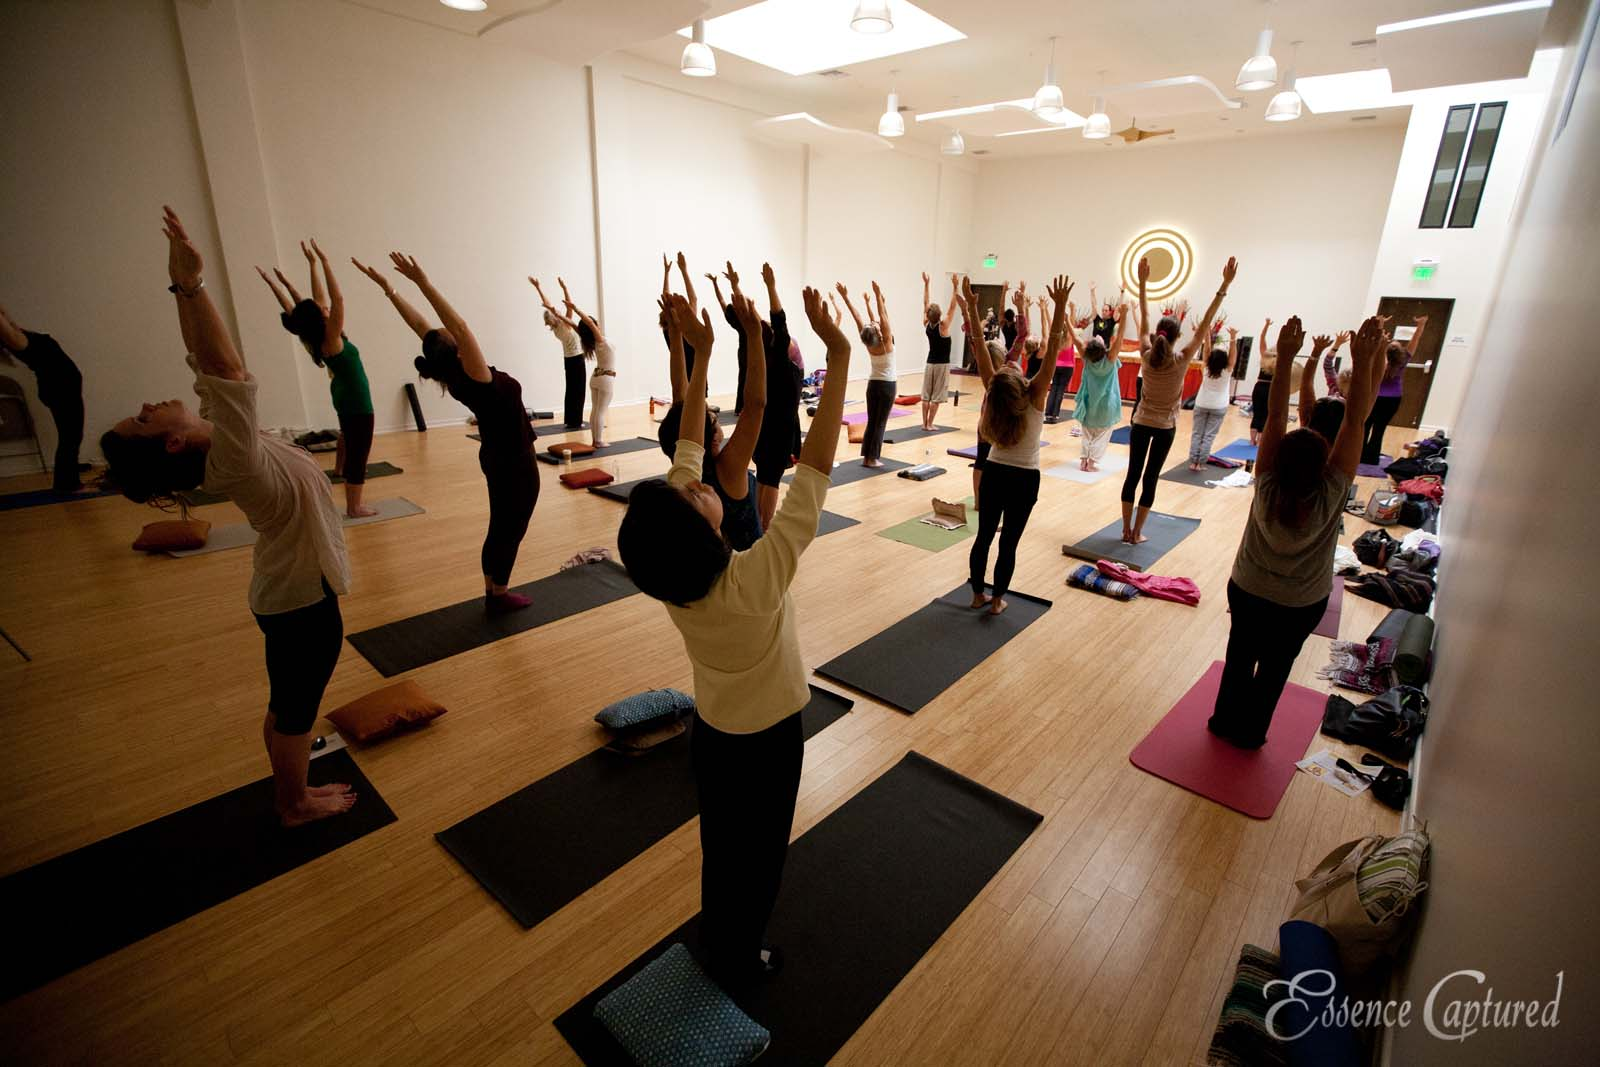 Shakti Naam class at Naam Yoga L.A. full class participation arms in the air arched backs